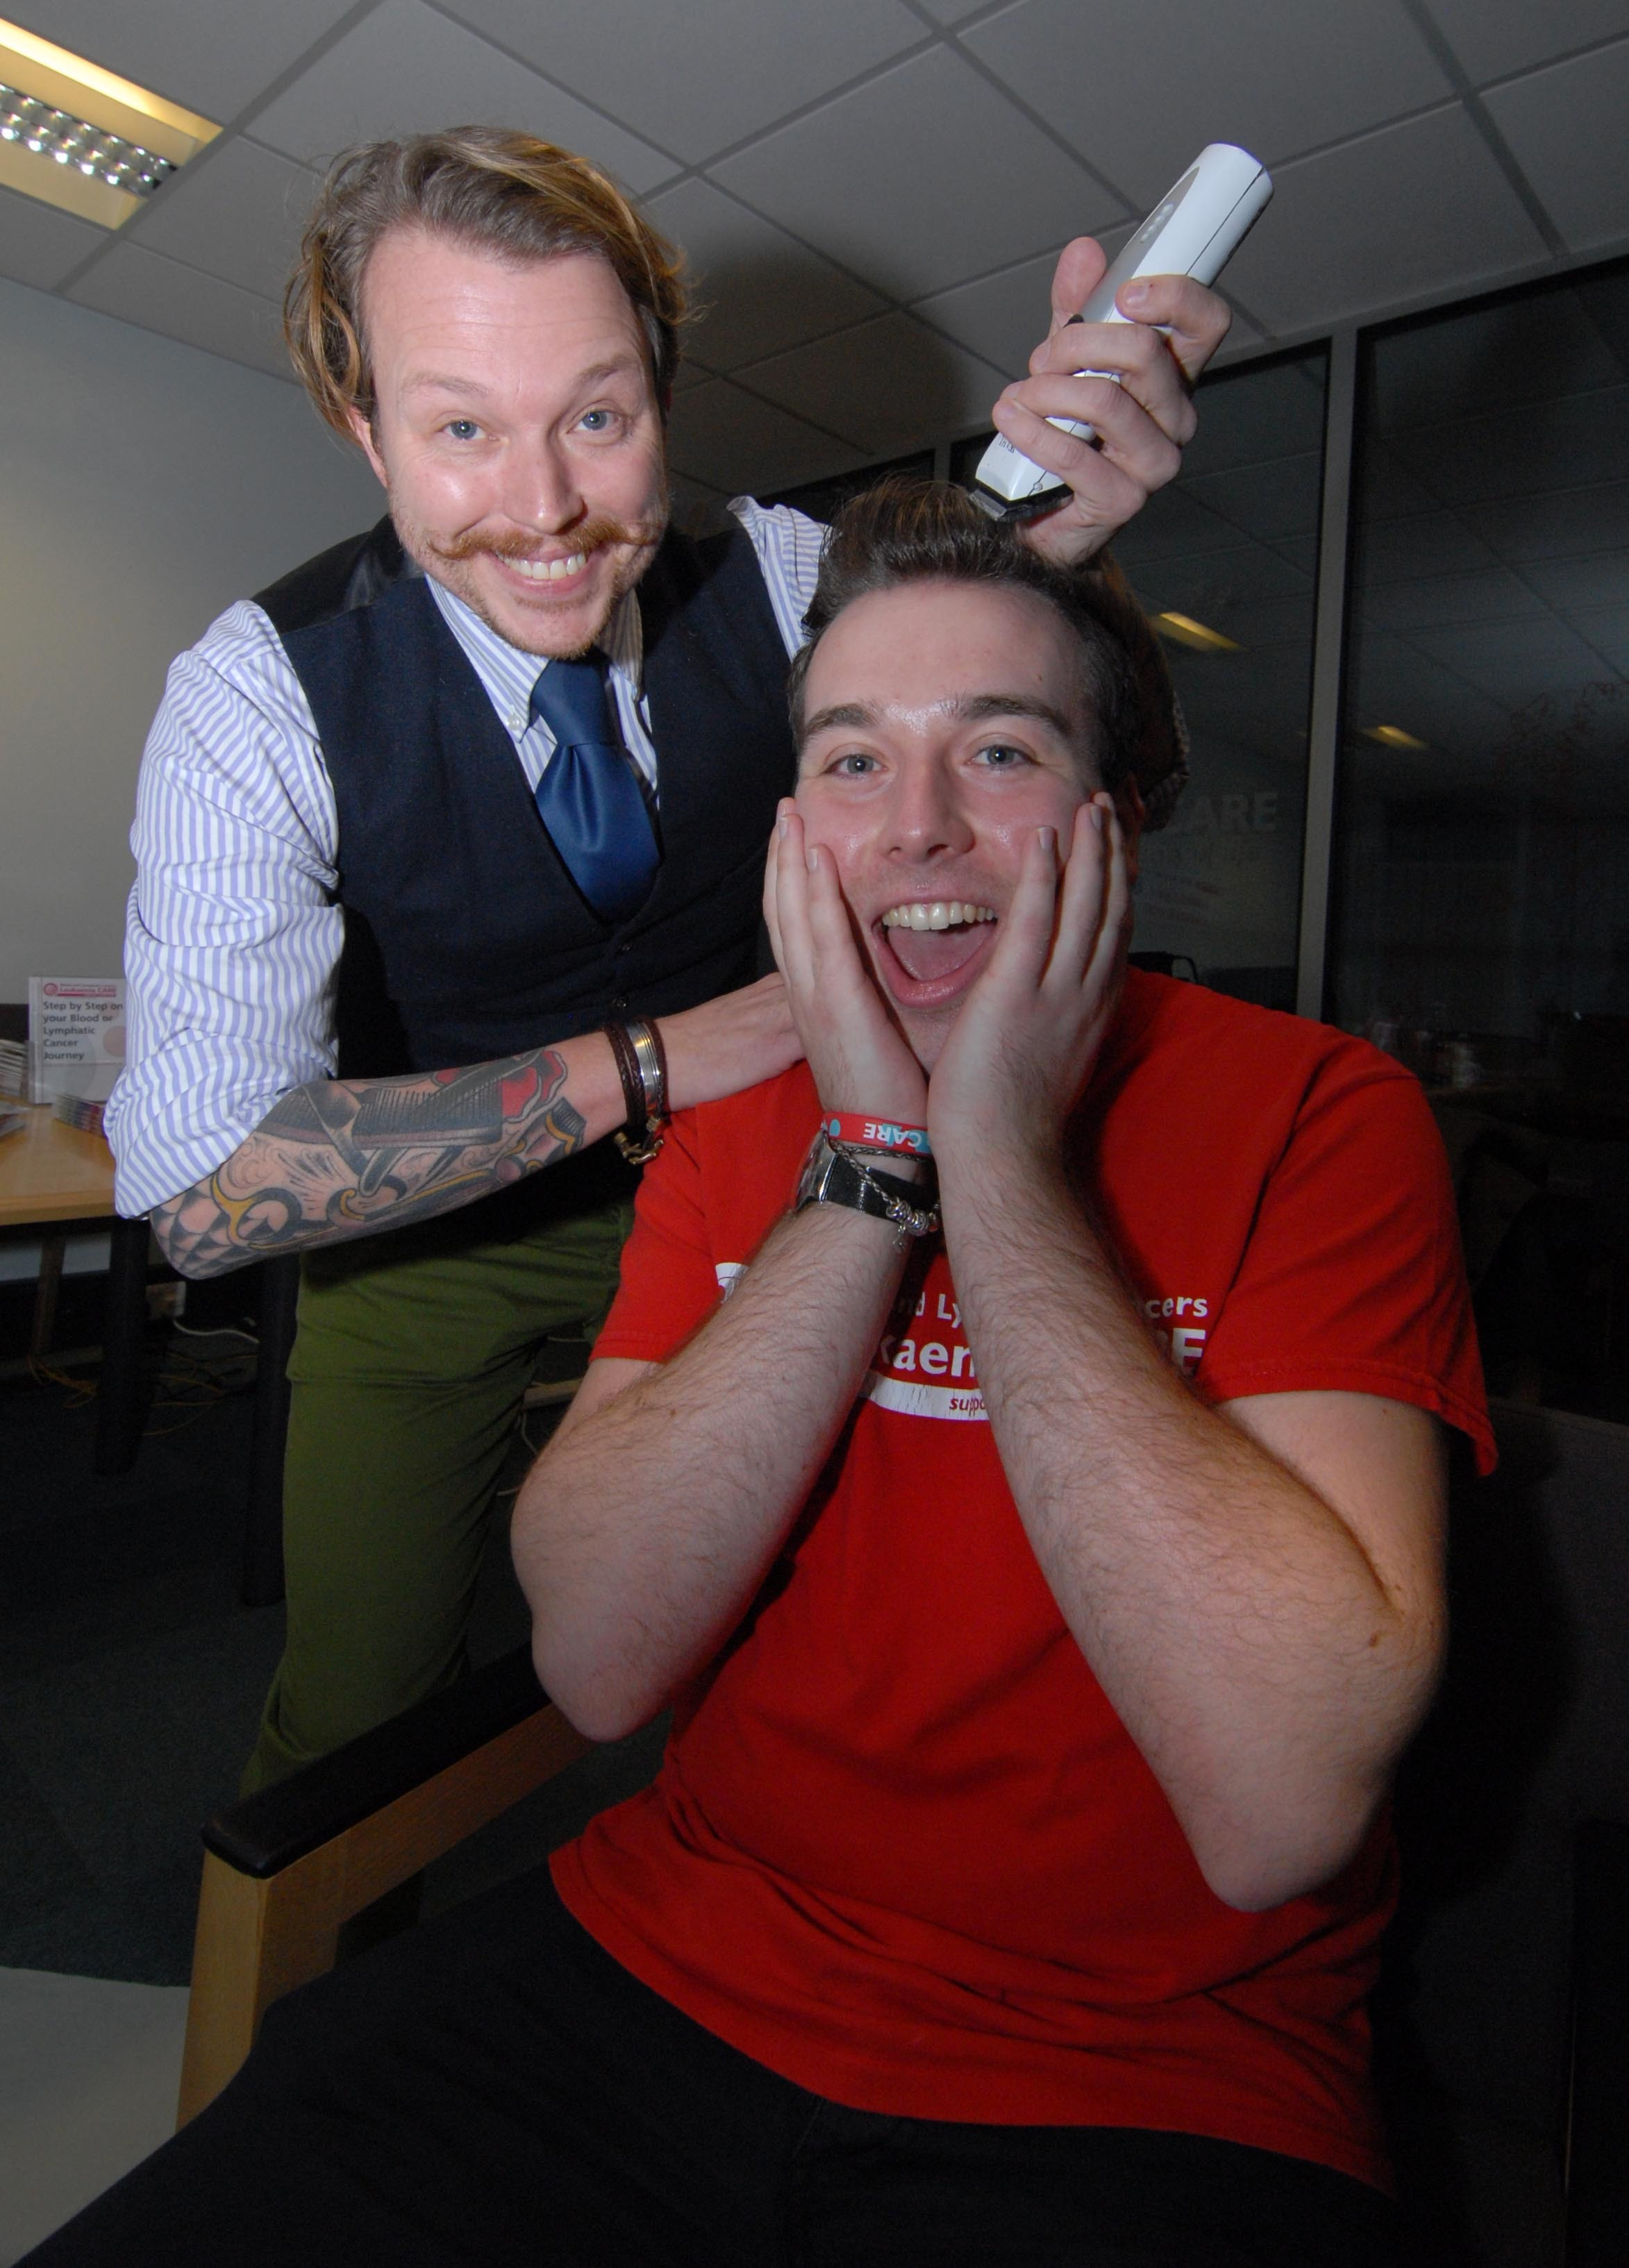 Charity worker has head shaved for London Marathon fundraising bid